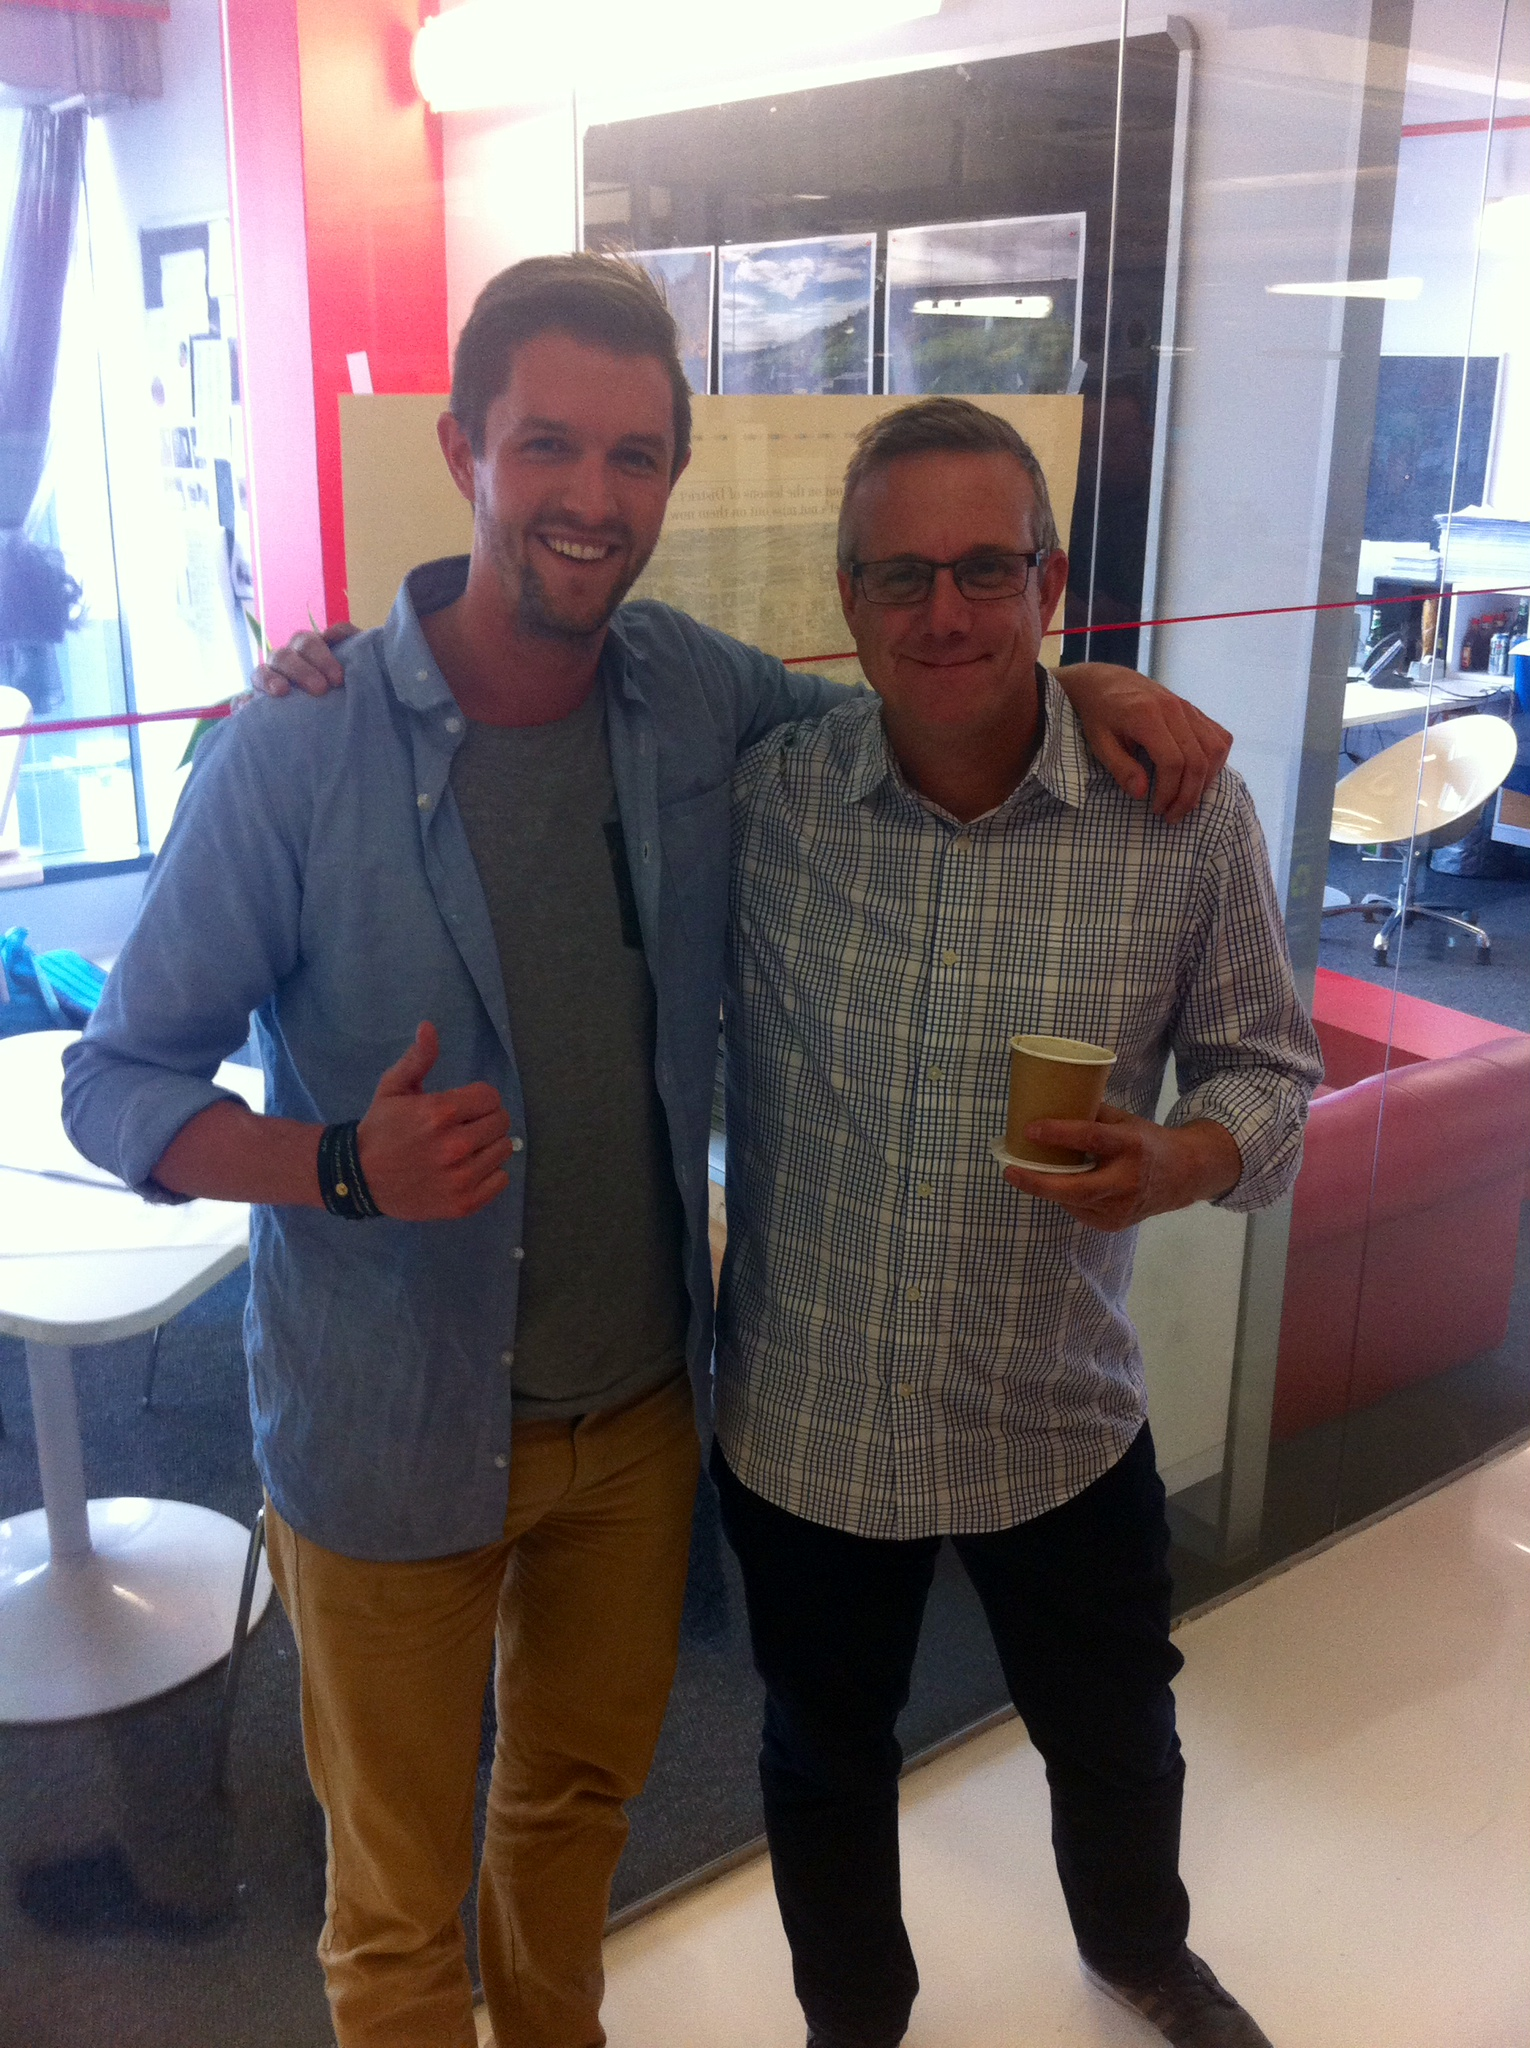 Mark van der Heijden + Chris Gotz at Ogilvy Cape Town